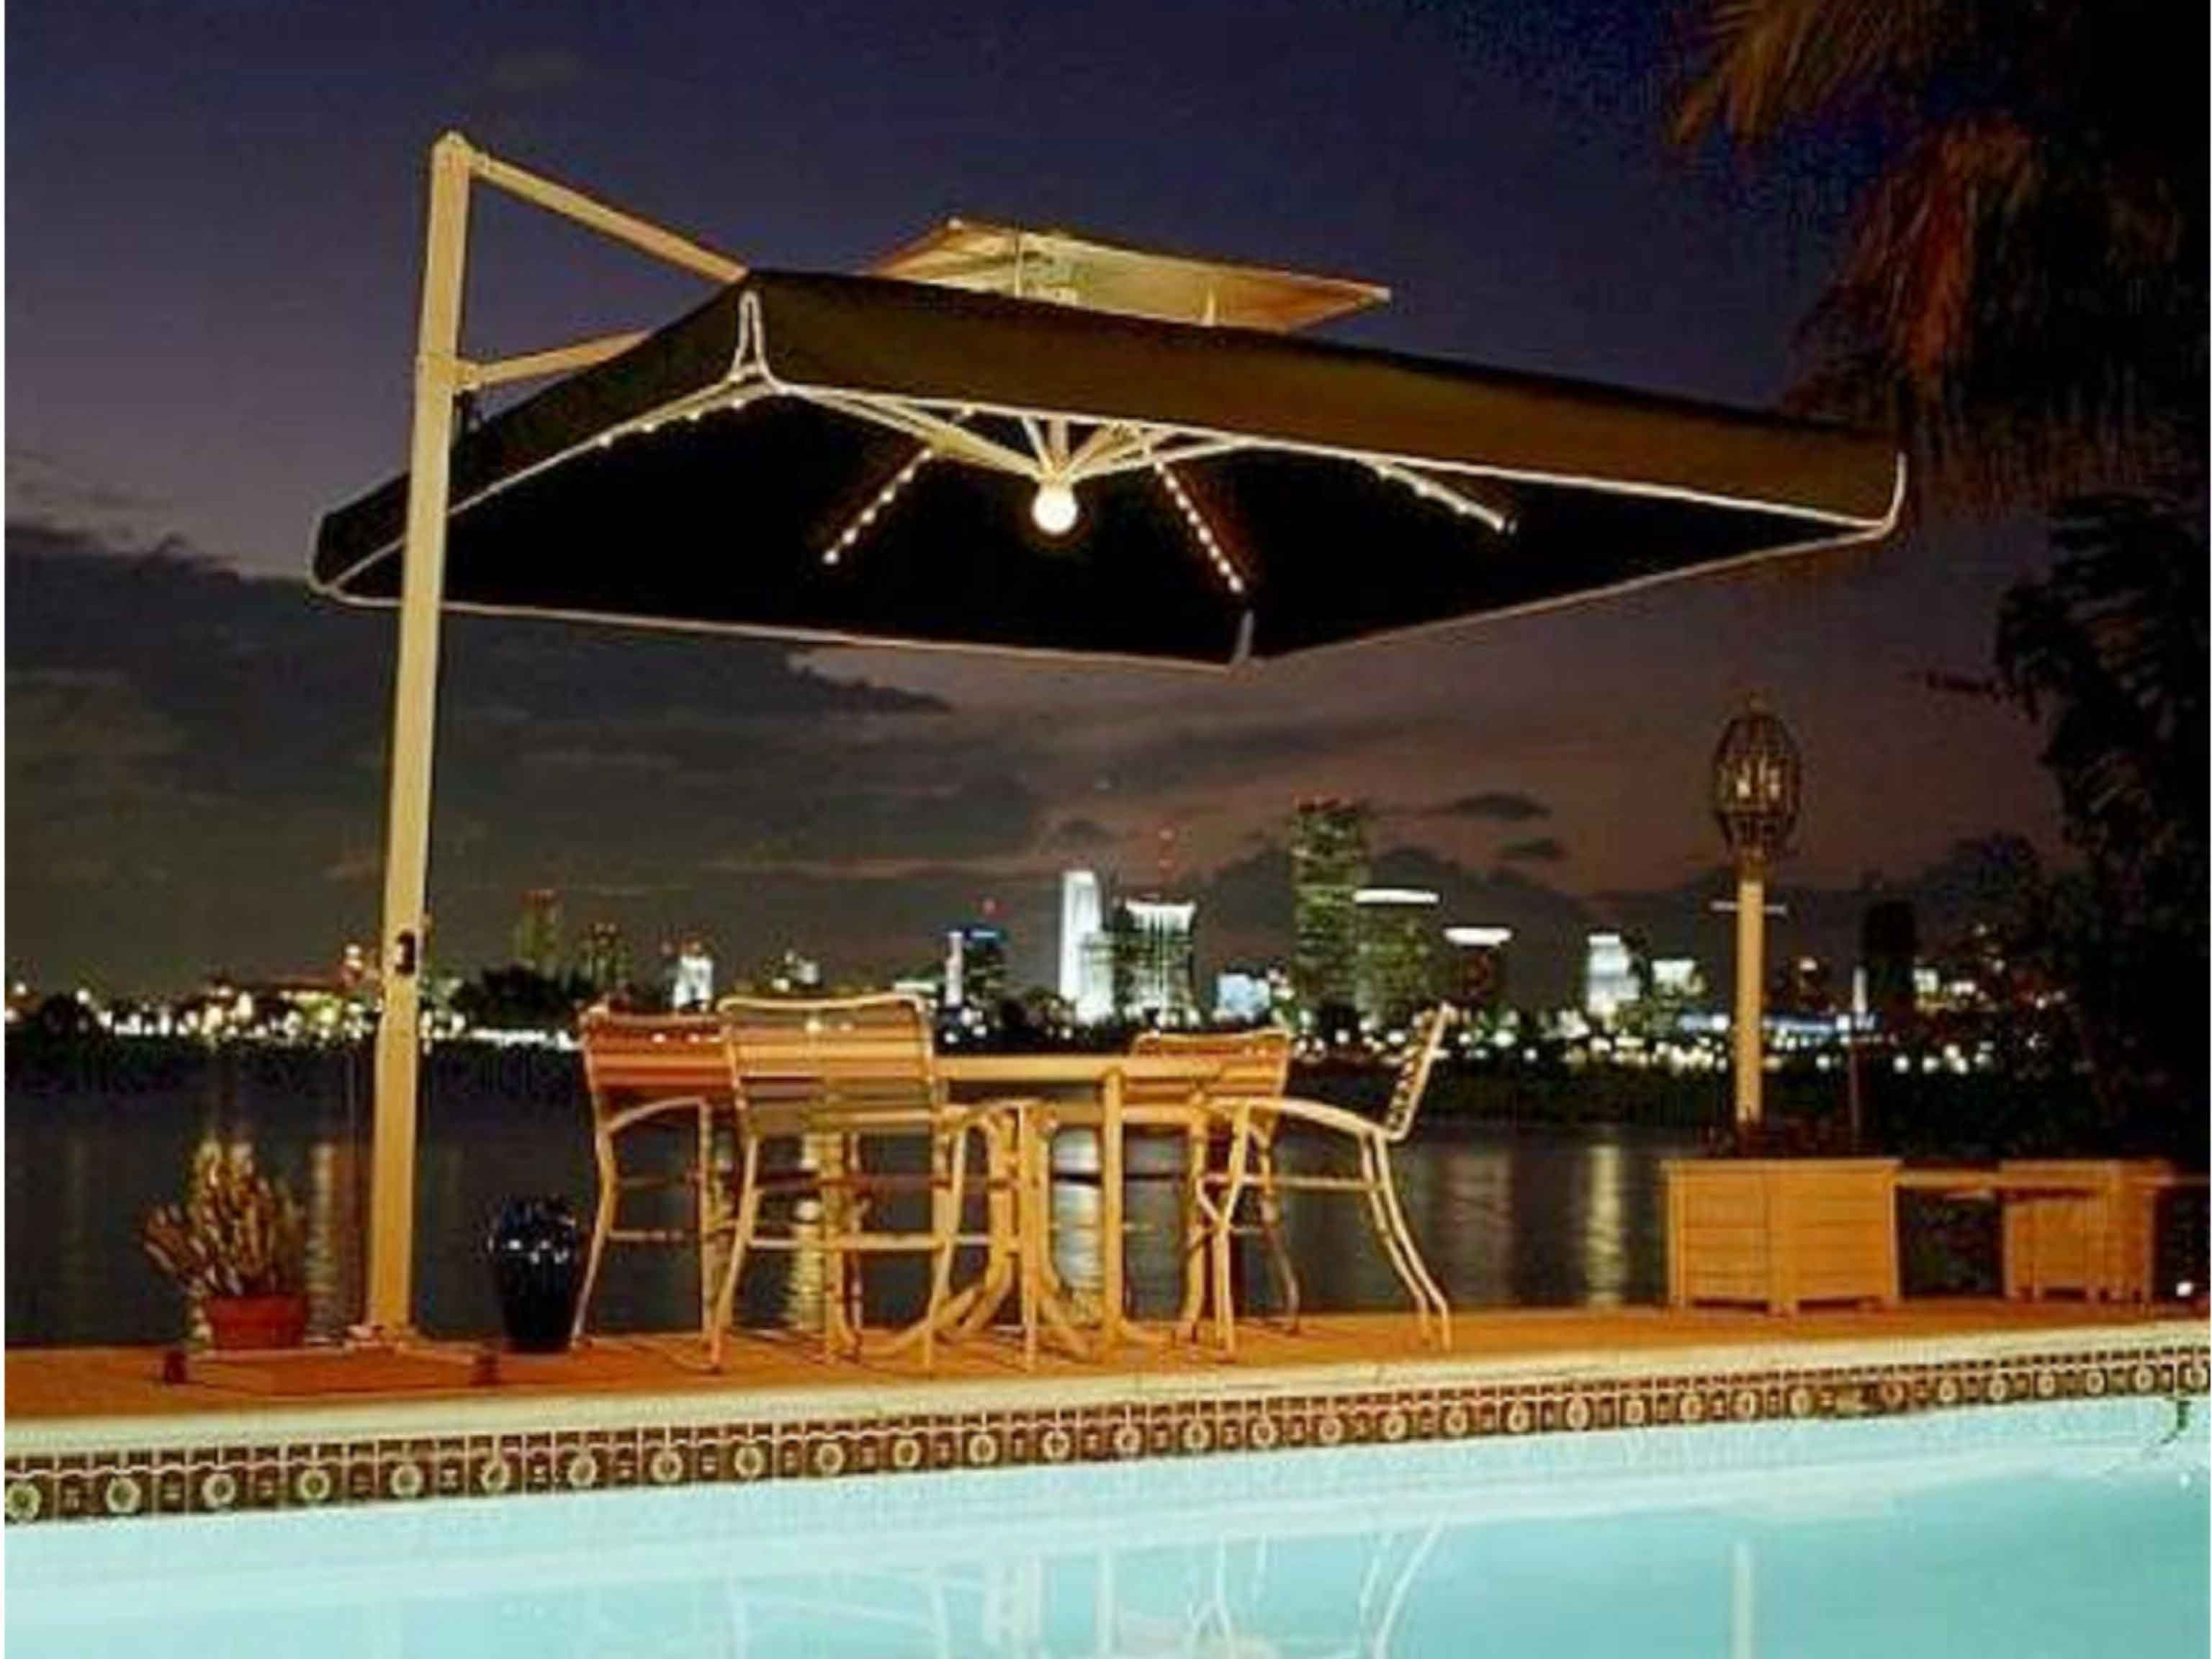 Best Patio Umbrella Inspirational Sunbrella Umbrella With Solar Pertaining To Most Recent Sunbrella Patio Umbrellas With Solar Lights (View 4 of 20)